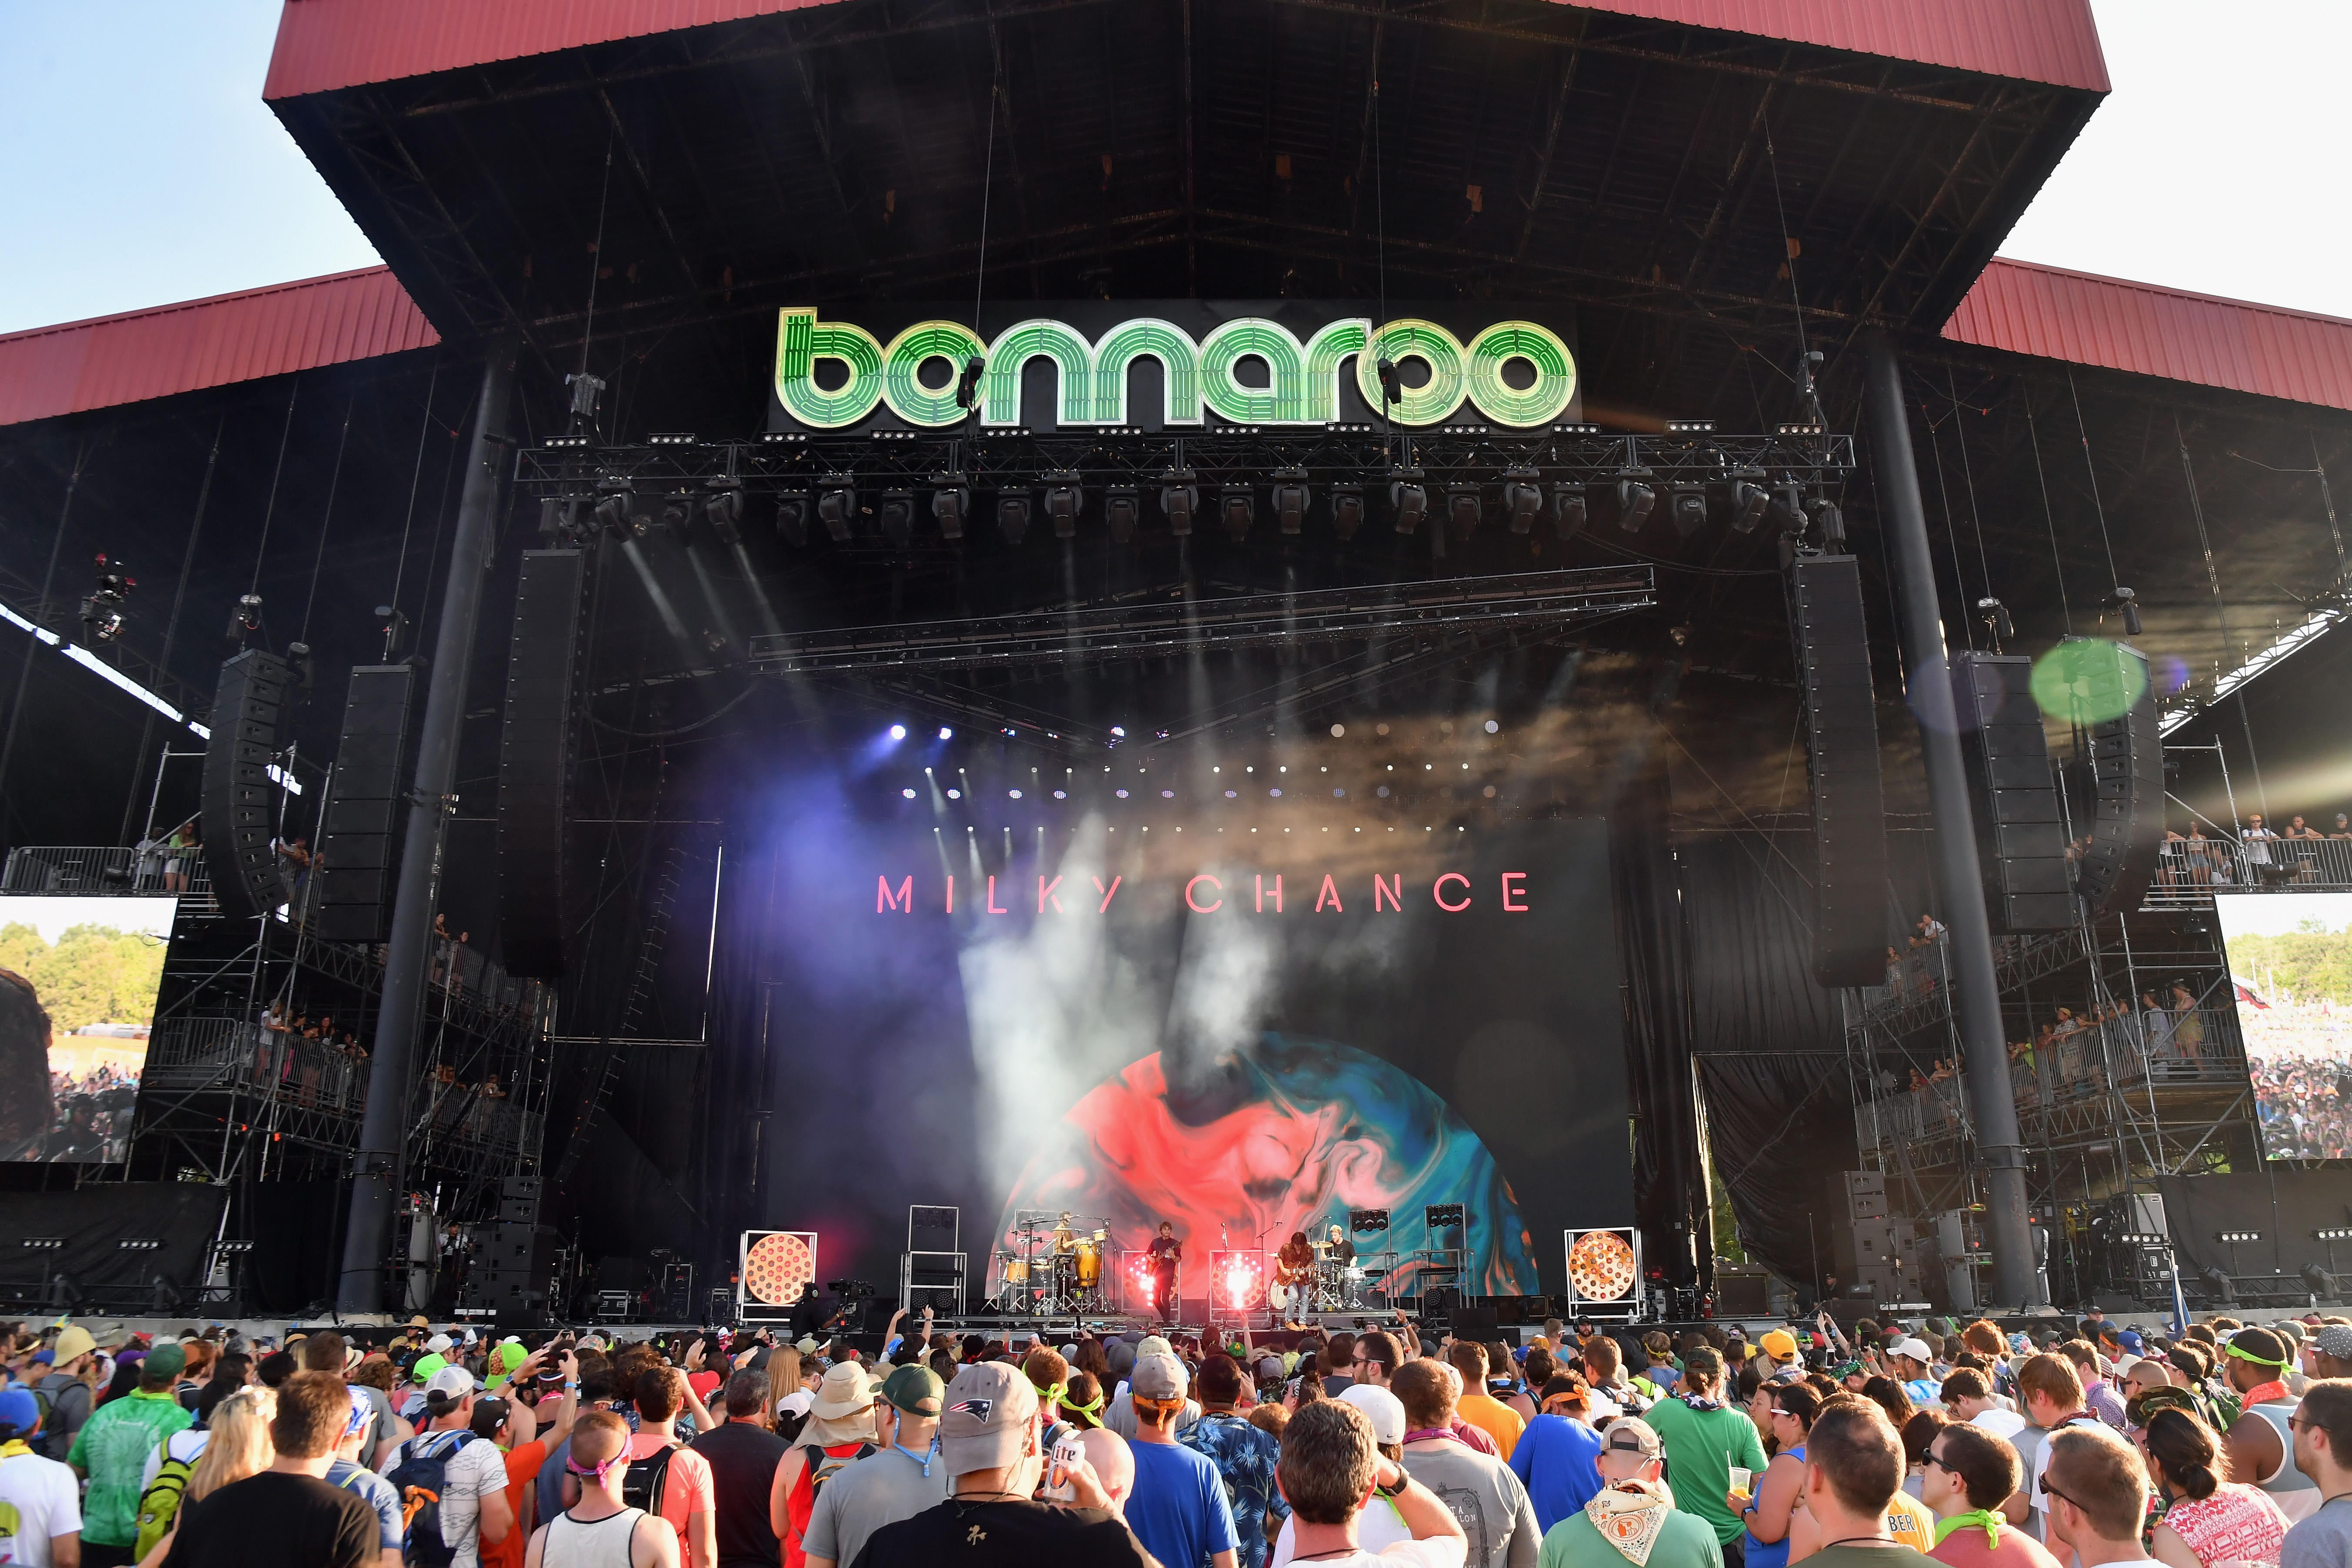 2017 Bonnaroo Arts And Music Festival - Day 4